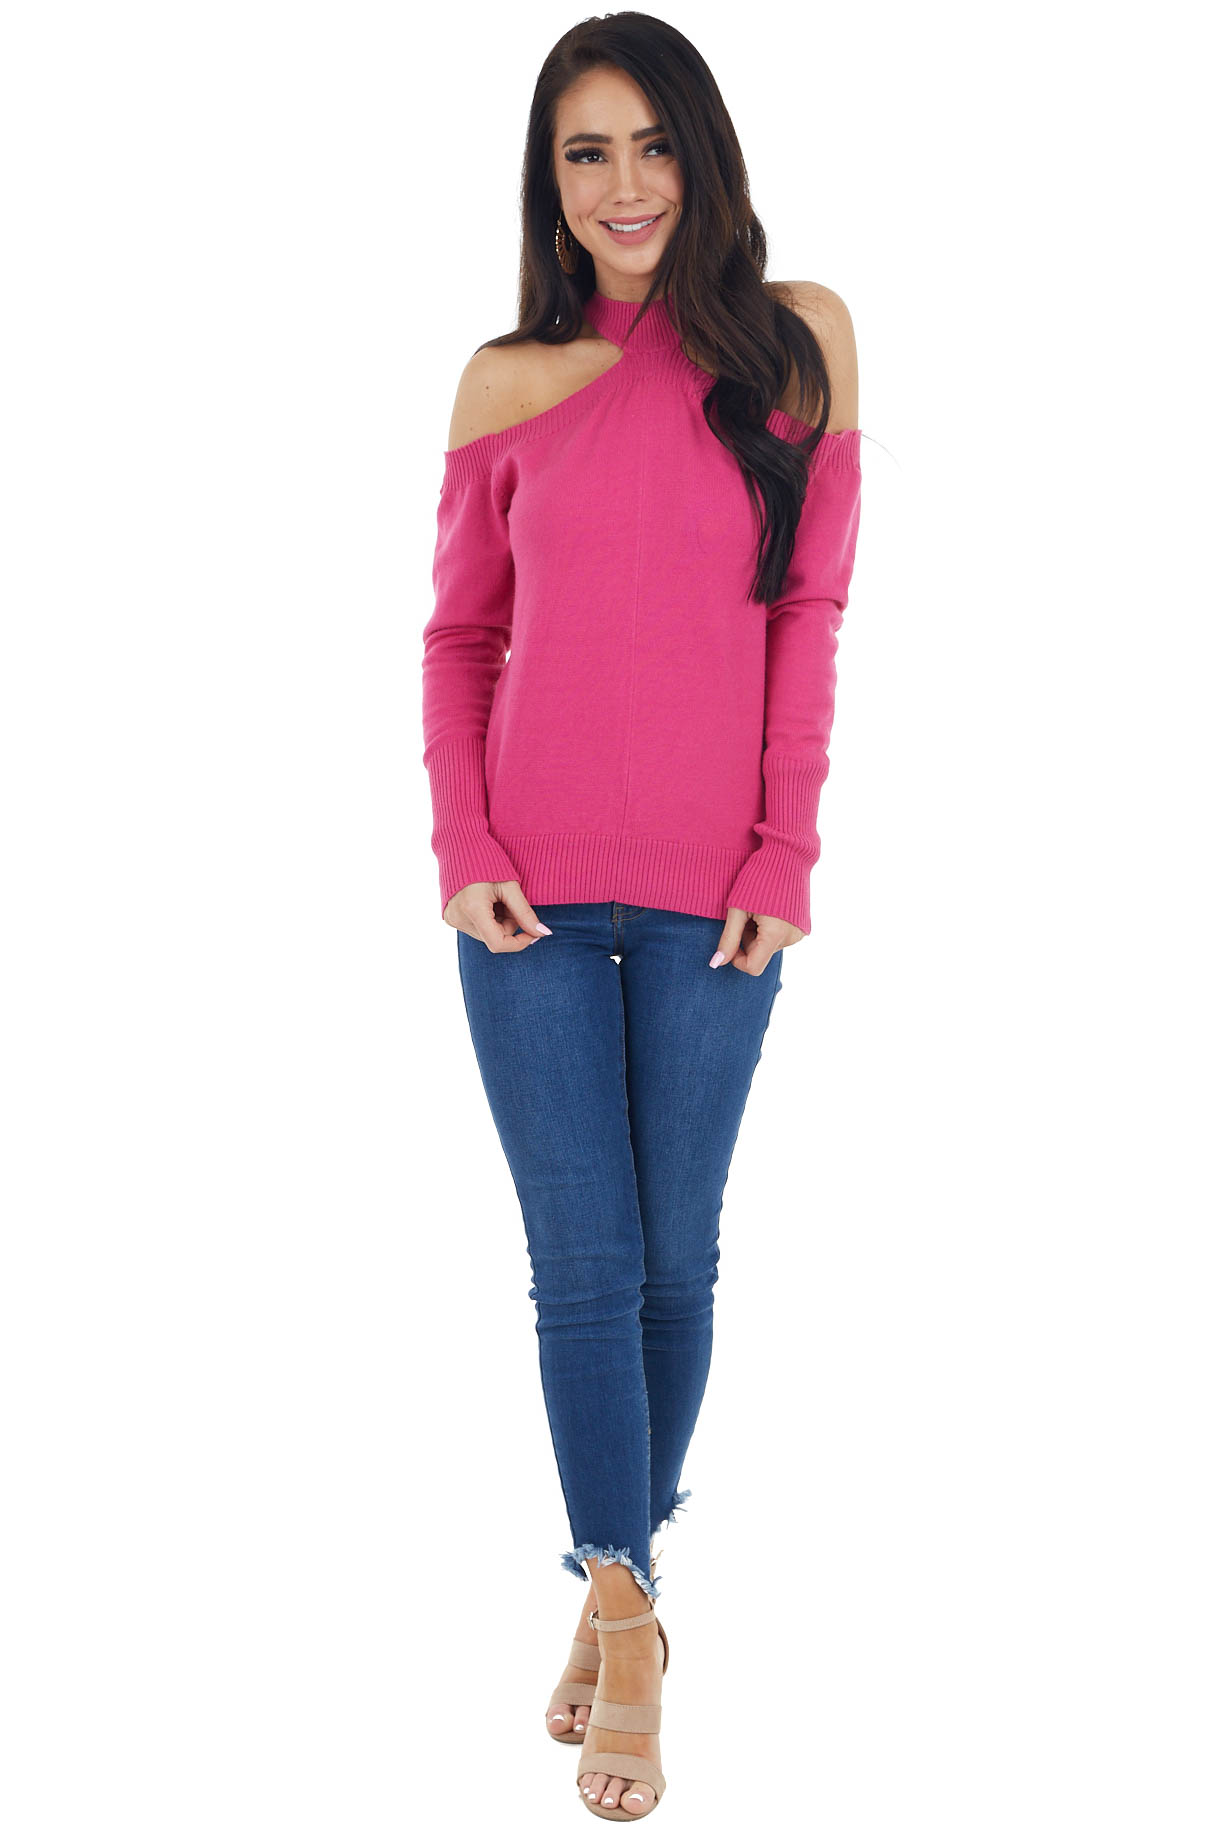 Fuchsia Mock Neck Soft Stretchy Knit Top with Cold Shoulders